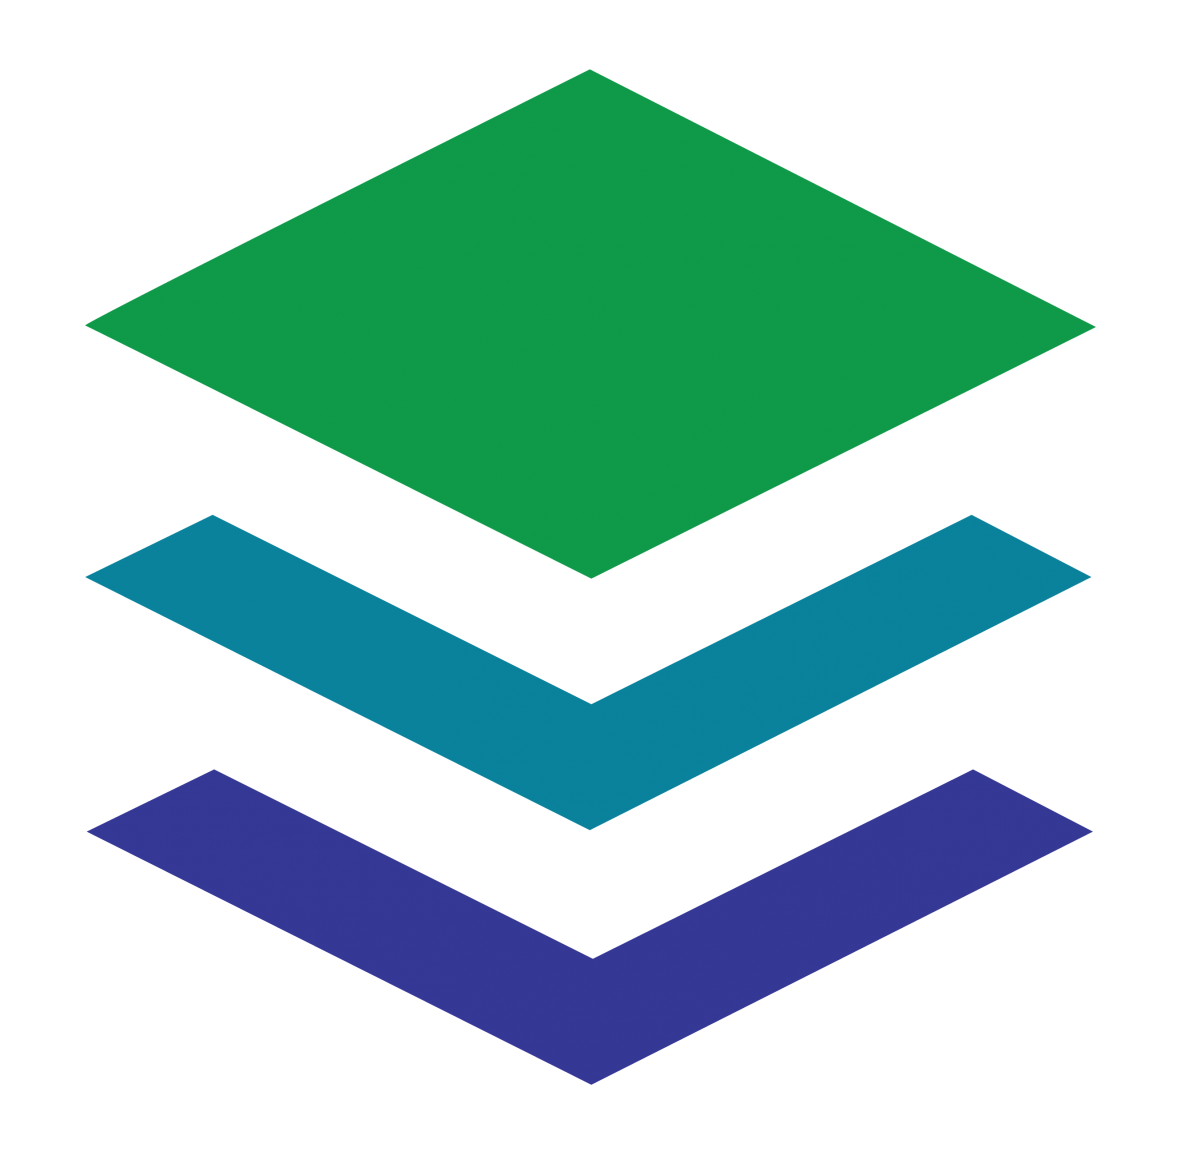 Image of GIS layer symbol